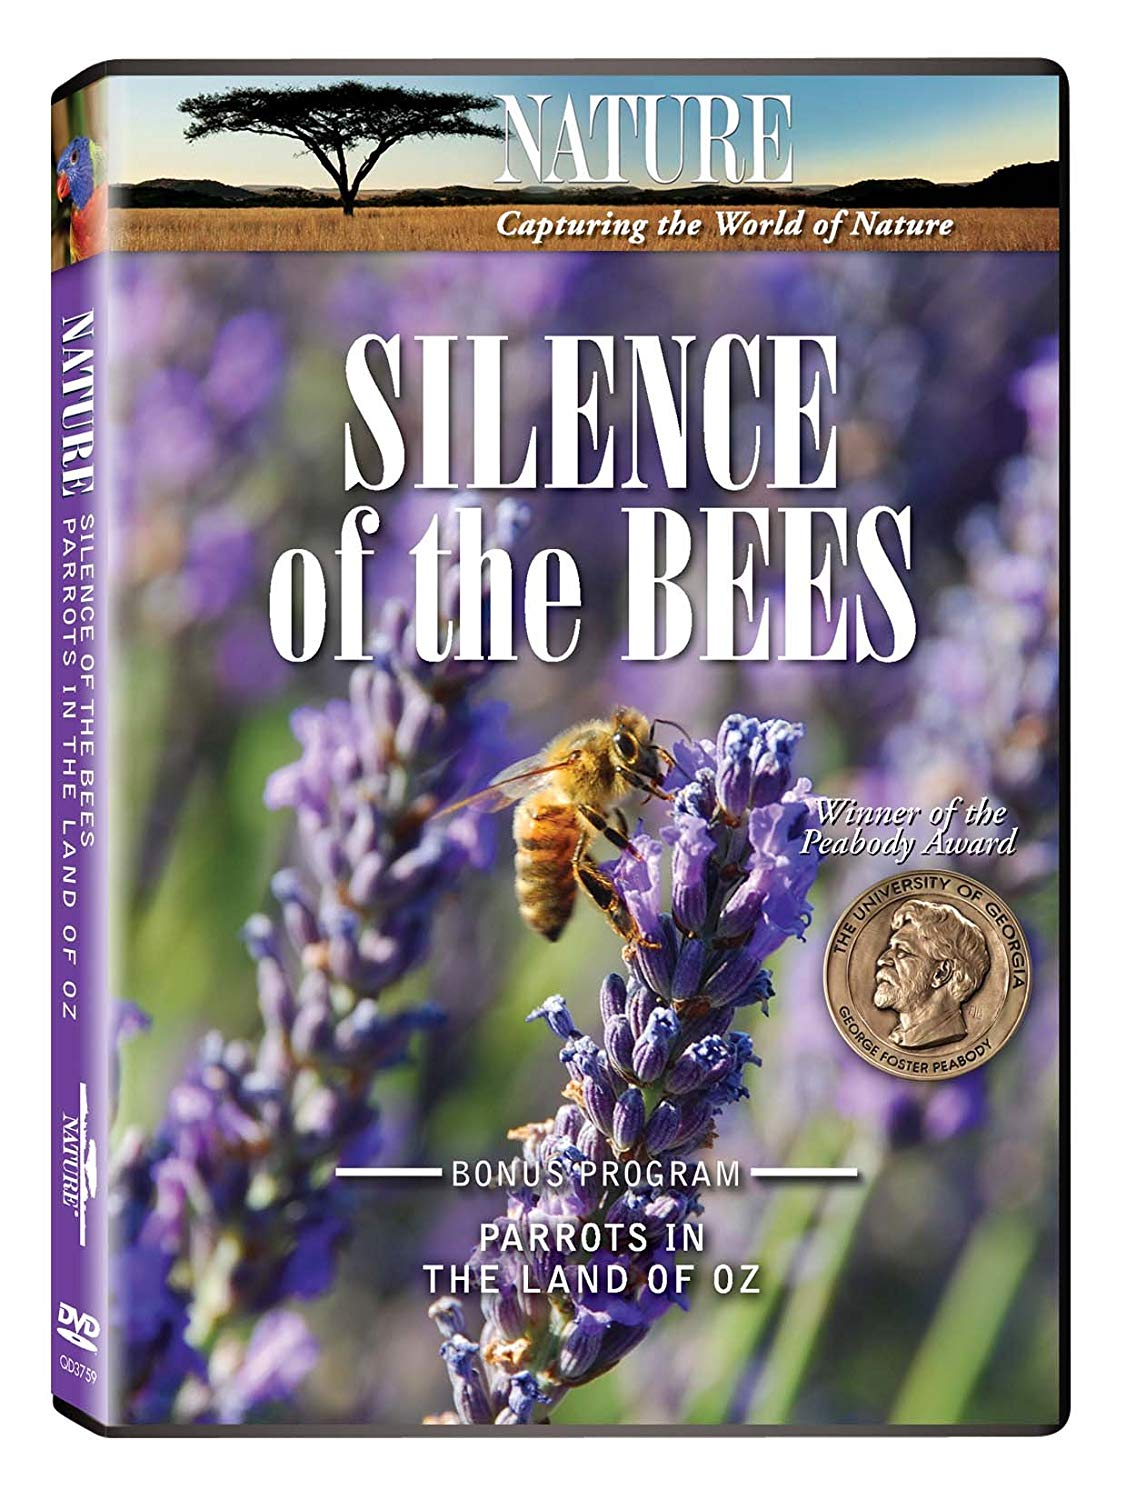 "[Documentary] Nature: Silence of the Bees - Here's the buzz on two great episodes from television's most honored natural history series. Winner of the prestigious Peabody Award, ""The Silence of the Bees"" explores one of Nature's most baffling mysteries: the disappearance of the honeybee! Beginning in the winter of 2006, millions of bees vanished from their hives without a trace. A precious pollinator of fruits and vegetables, the disappearing bees left billions of dollars of crops at risk and threatened our food supply.Join researchers as follow the trail of clues from the Untied States to southern France, from the hills of Spain to England, all the way to Australia and China as they scramble to discover why honeybees were dying in record numbers — and to stop the epidemic in its tracks."